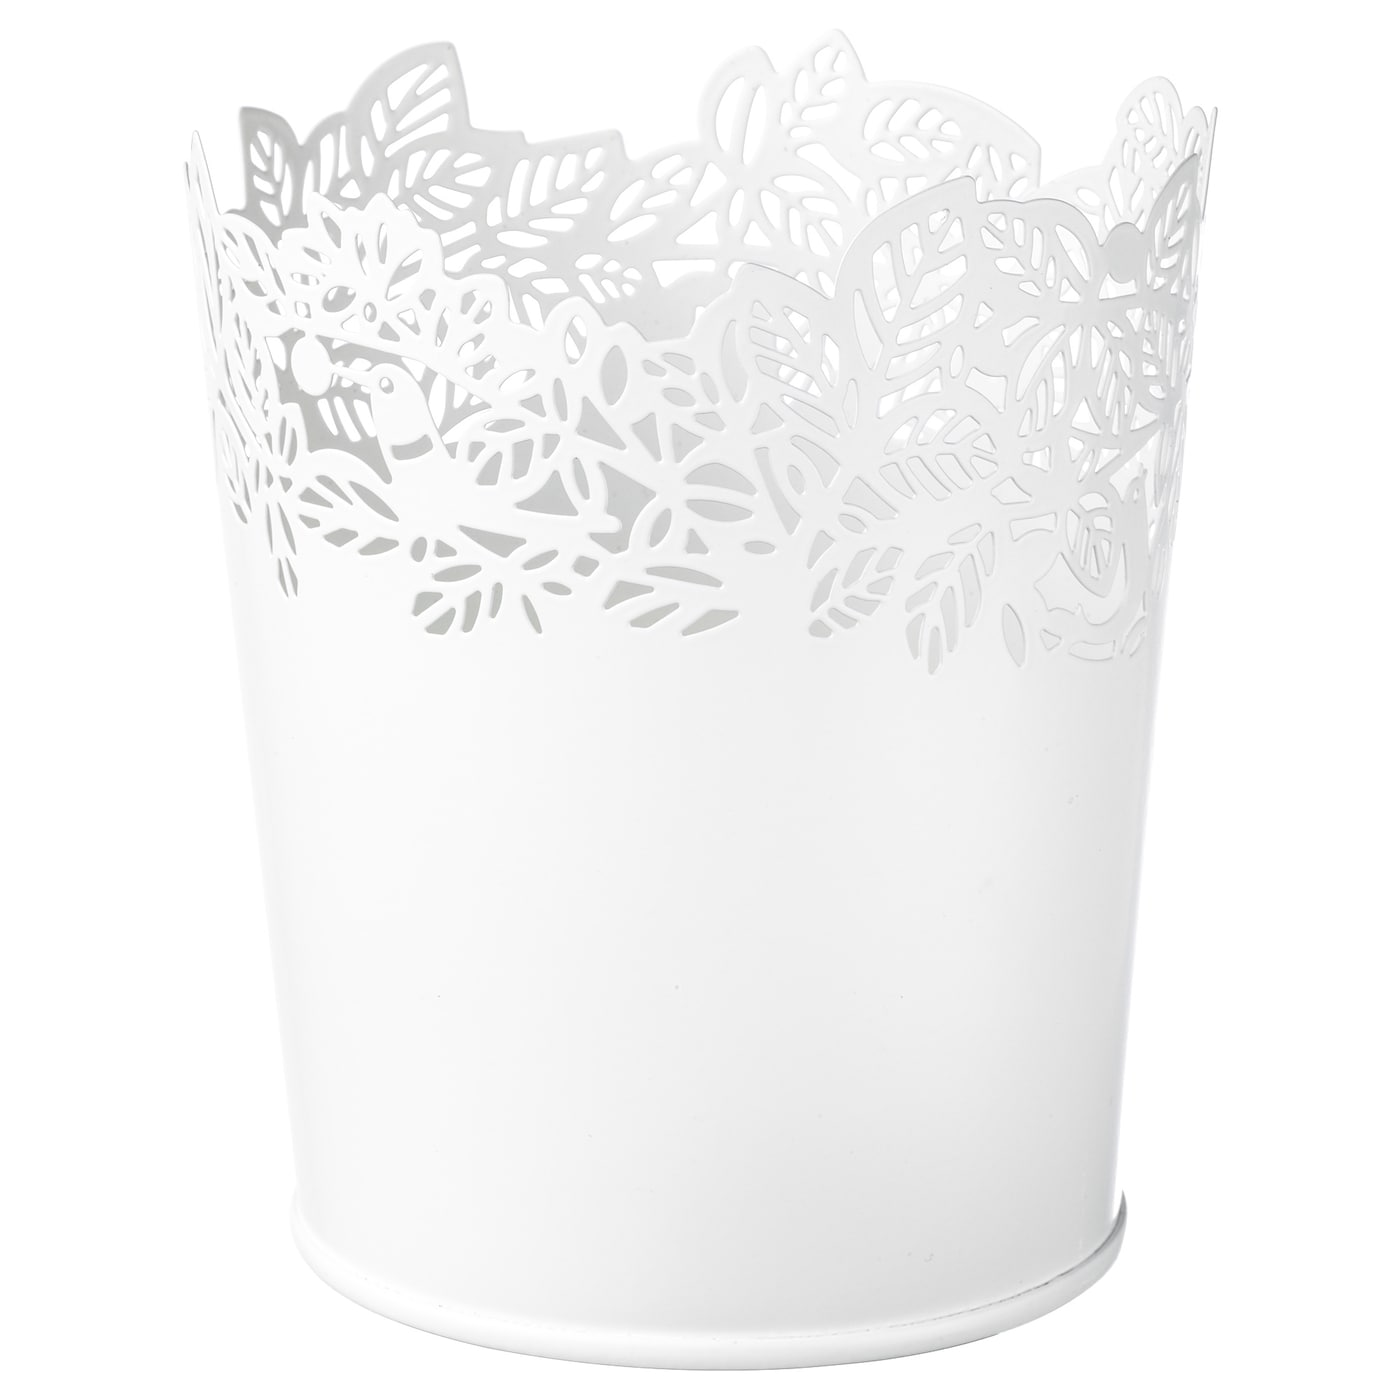 IKEA SAMVERKA plant pot Decorate your home with plants combined with a plant pot to suit your style.